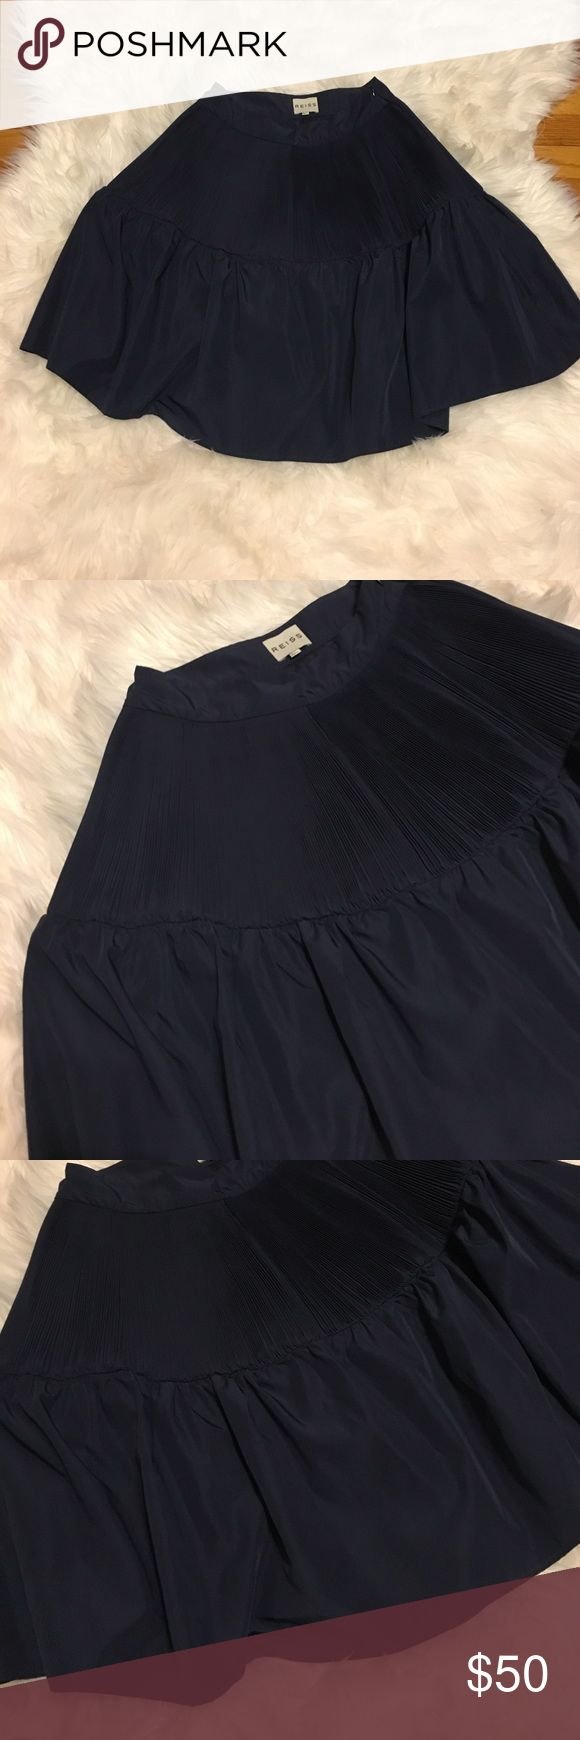 Reiss Navy Circle Skirt 0 Navy Blue Reiss Skirt. Top of Skirt has tiny pleats and the rest of the skirt flares out. Size 0. Ask any questions! ✖️No trades. Price is pretty firm. If you are interested in a discount, creating a bundle is the best way 🎀 Reiss Skirts